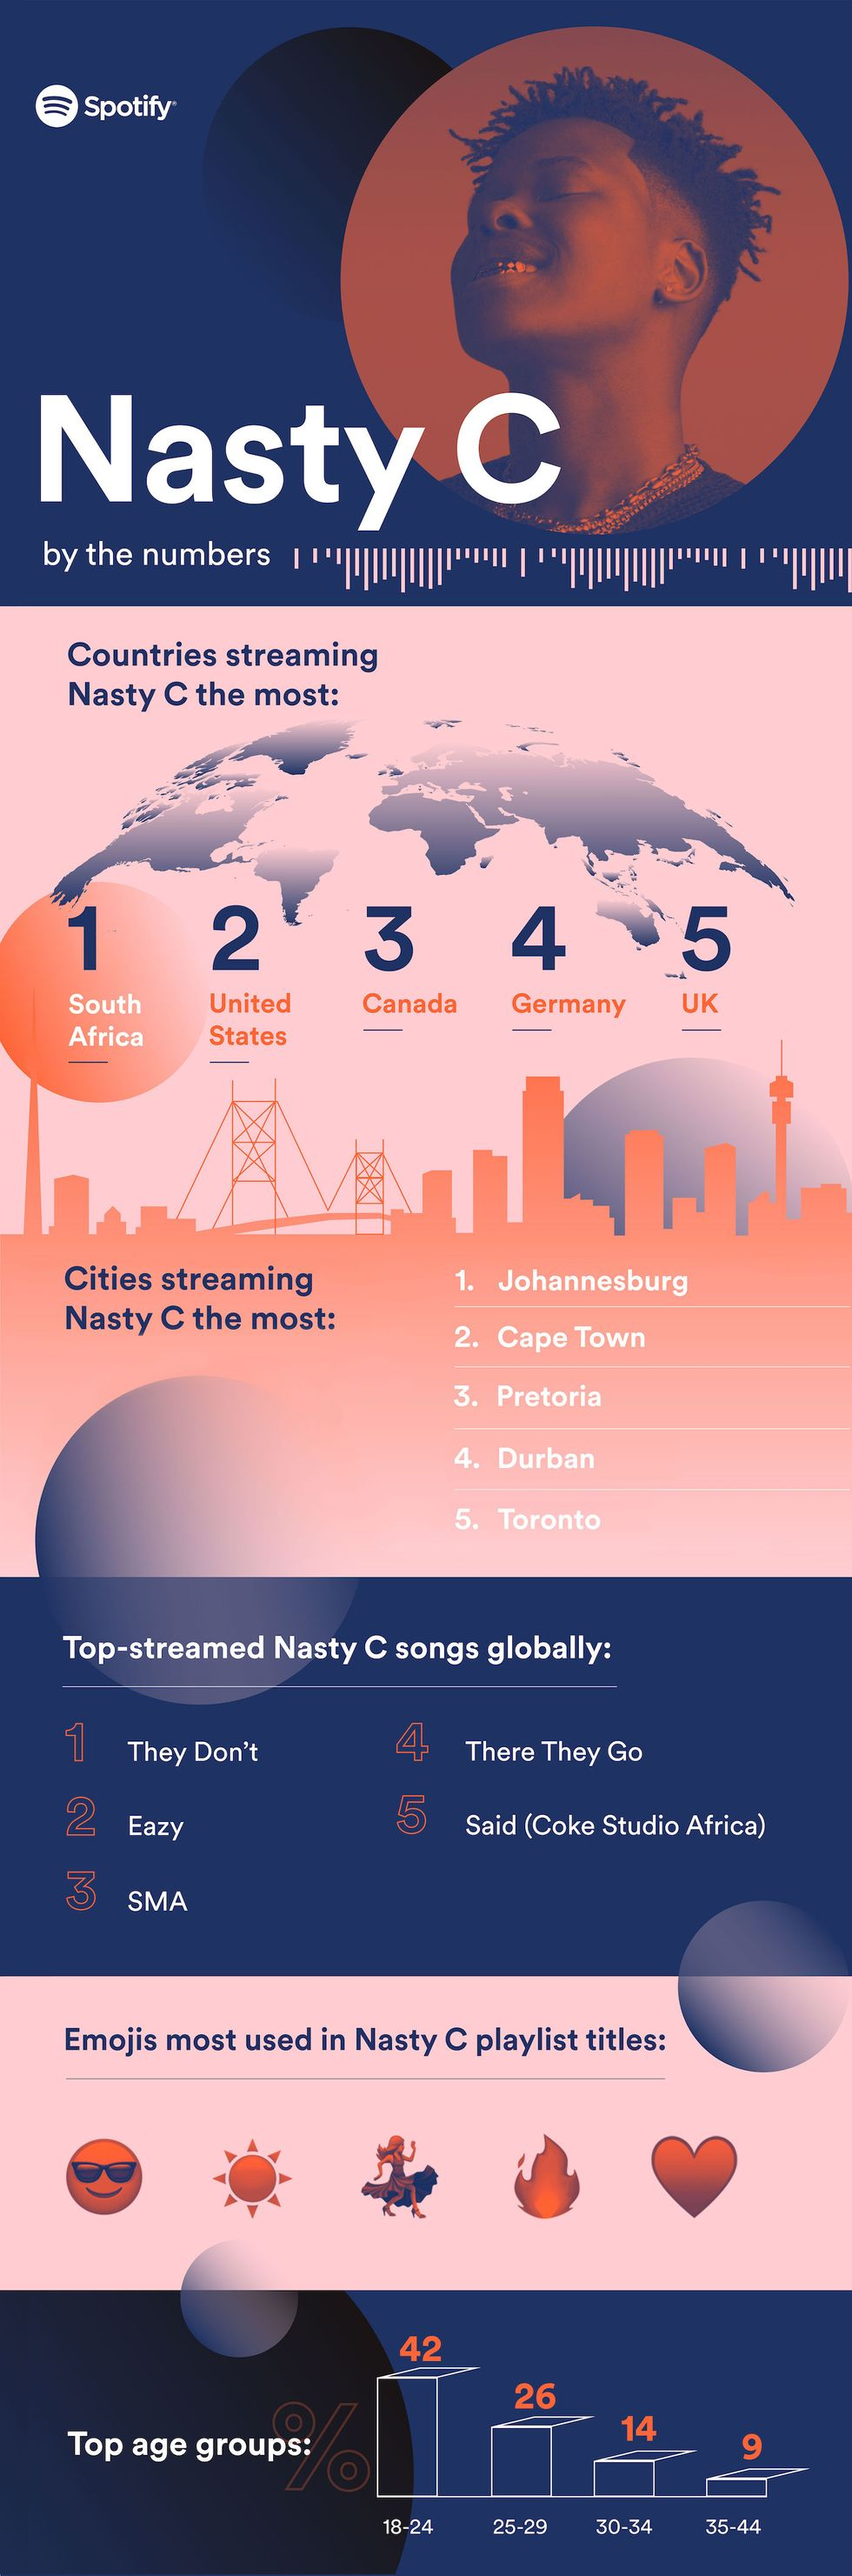 An infographic showing some interesting stats on Nasty C based on activity on Spotify.